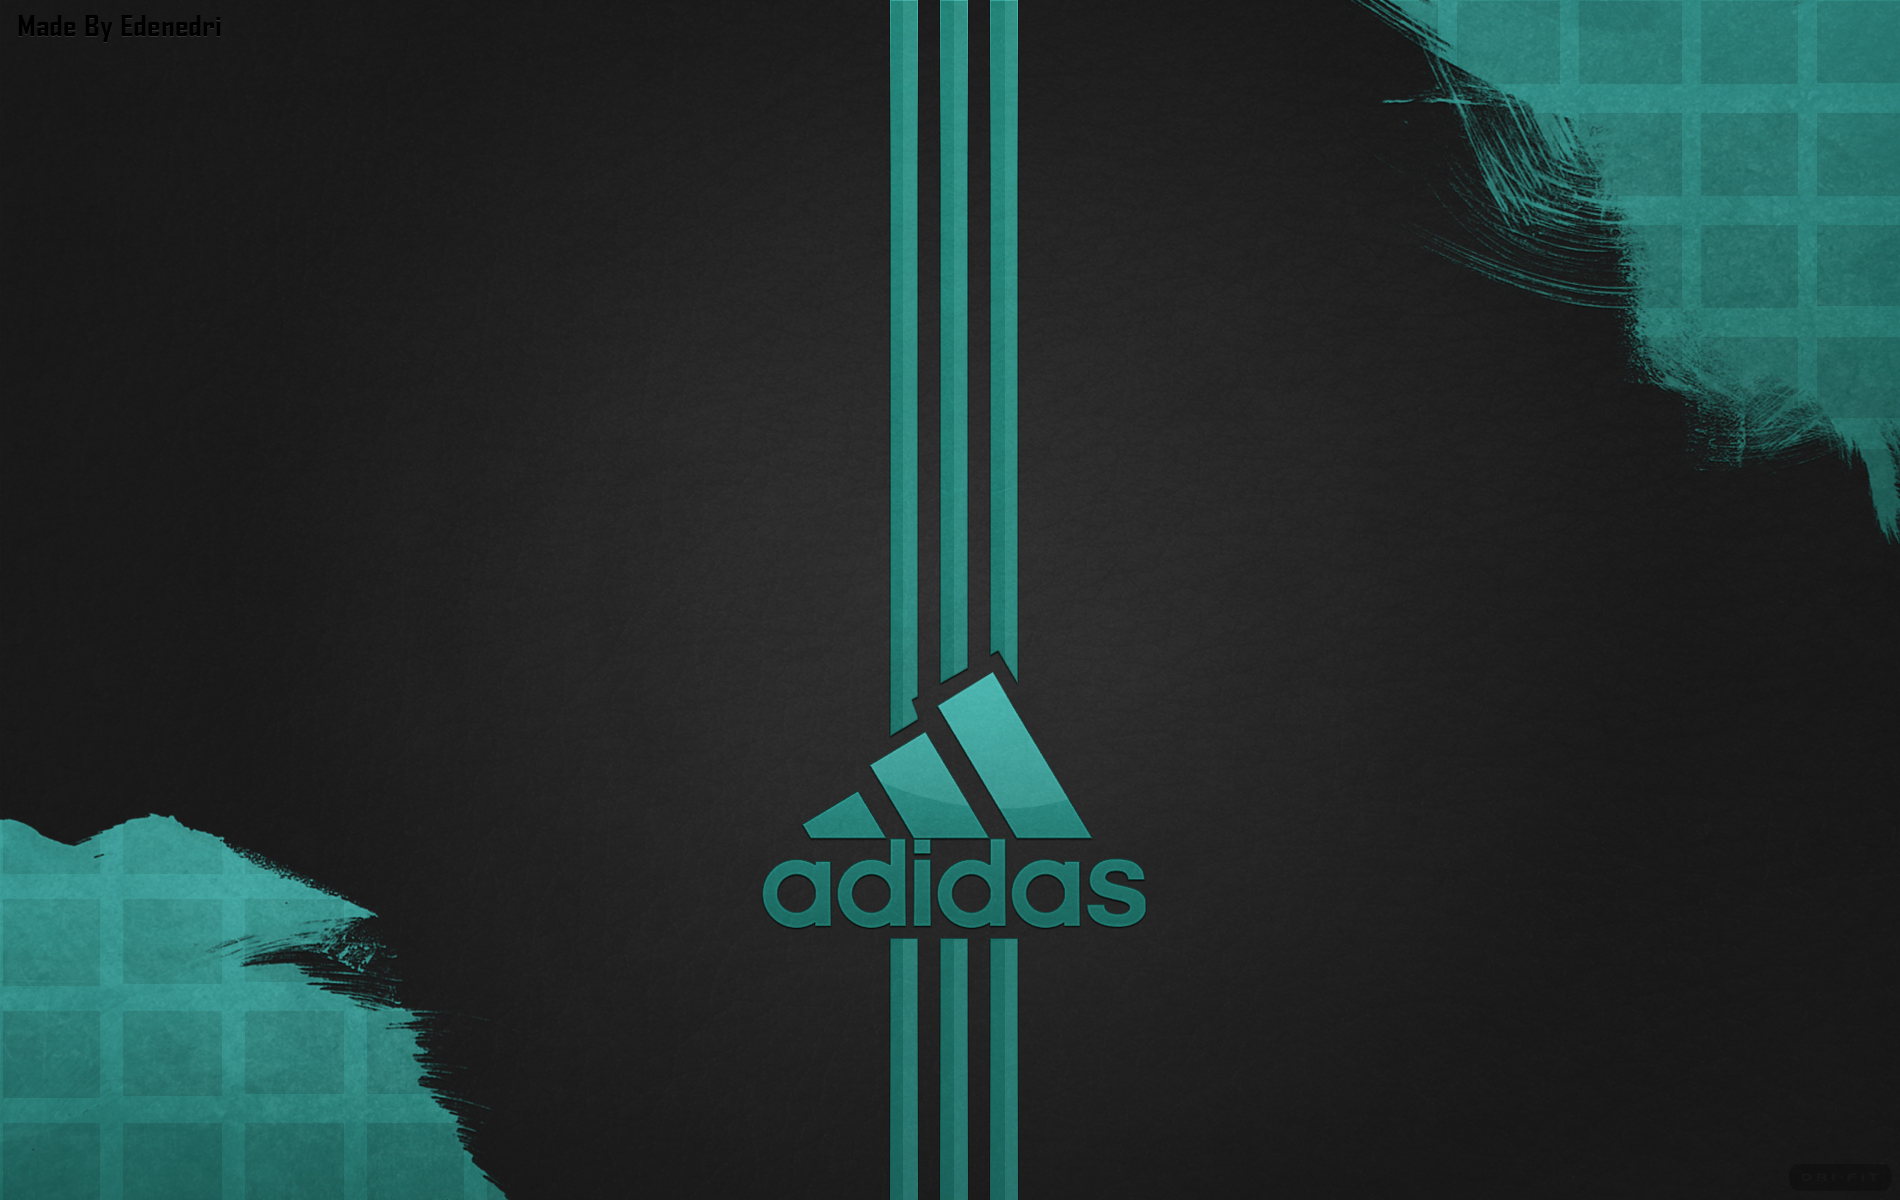 Adidas Backgrounds Wallpapers ImageBankbiz 1900x1200